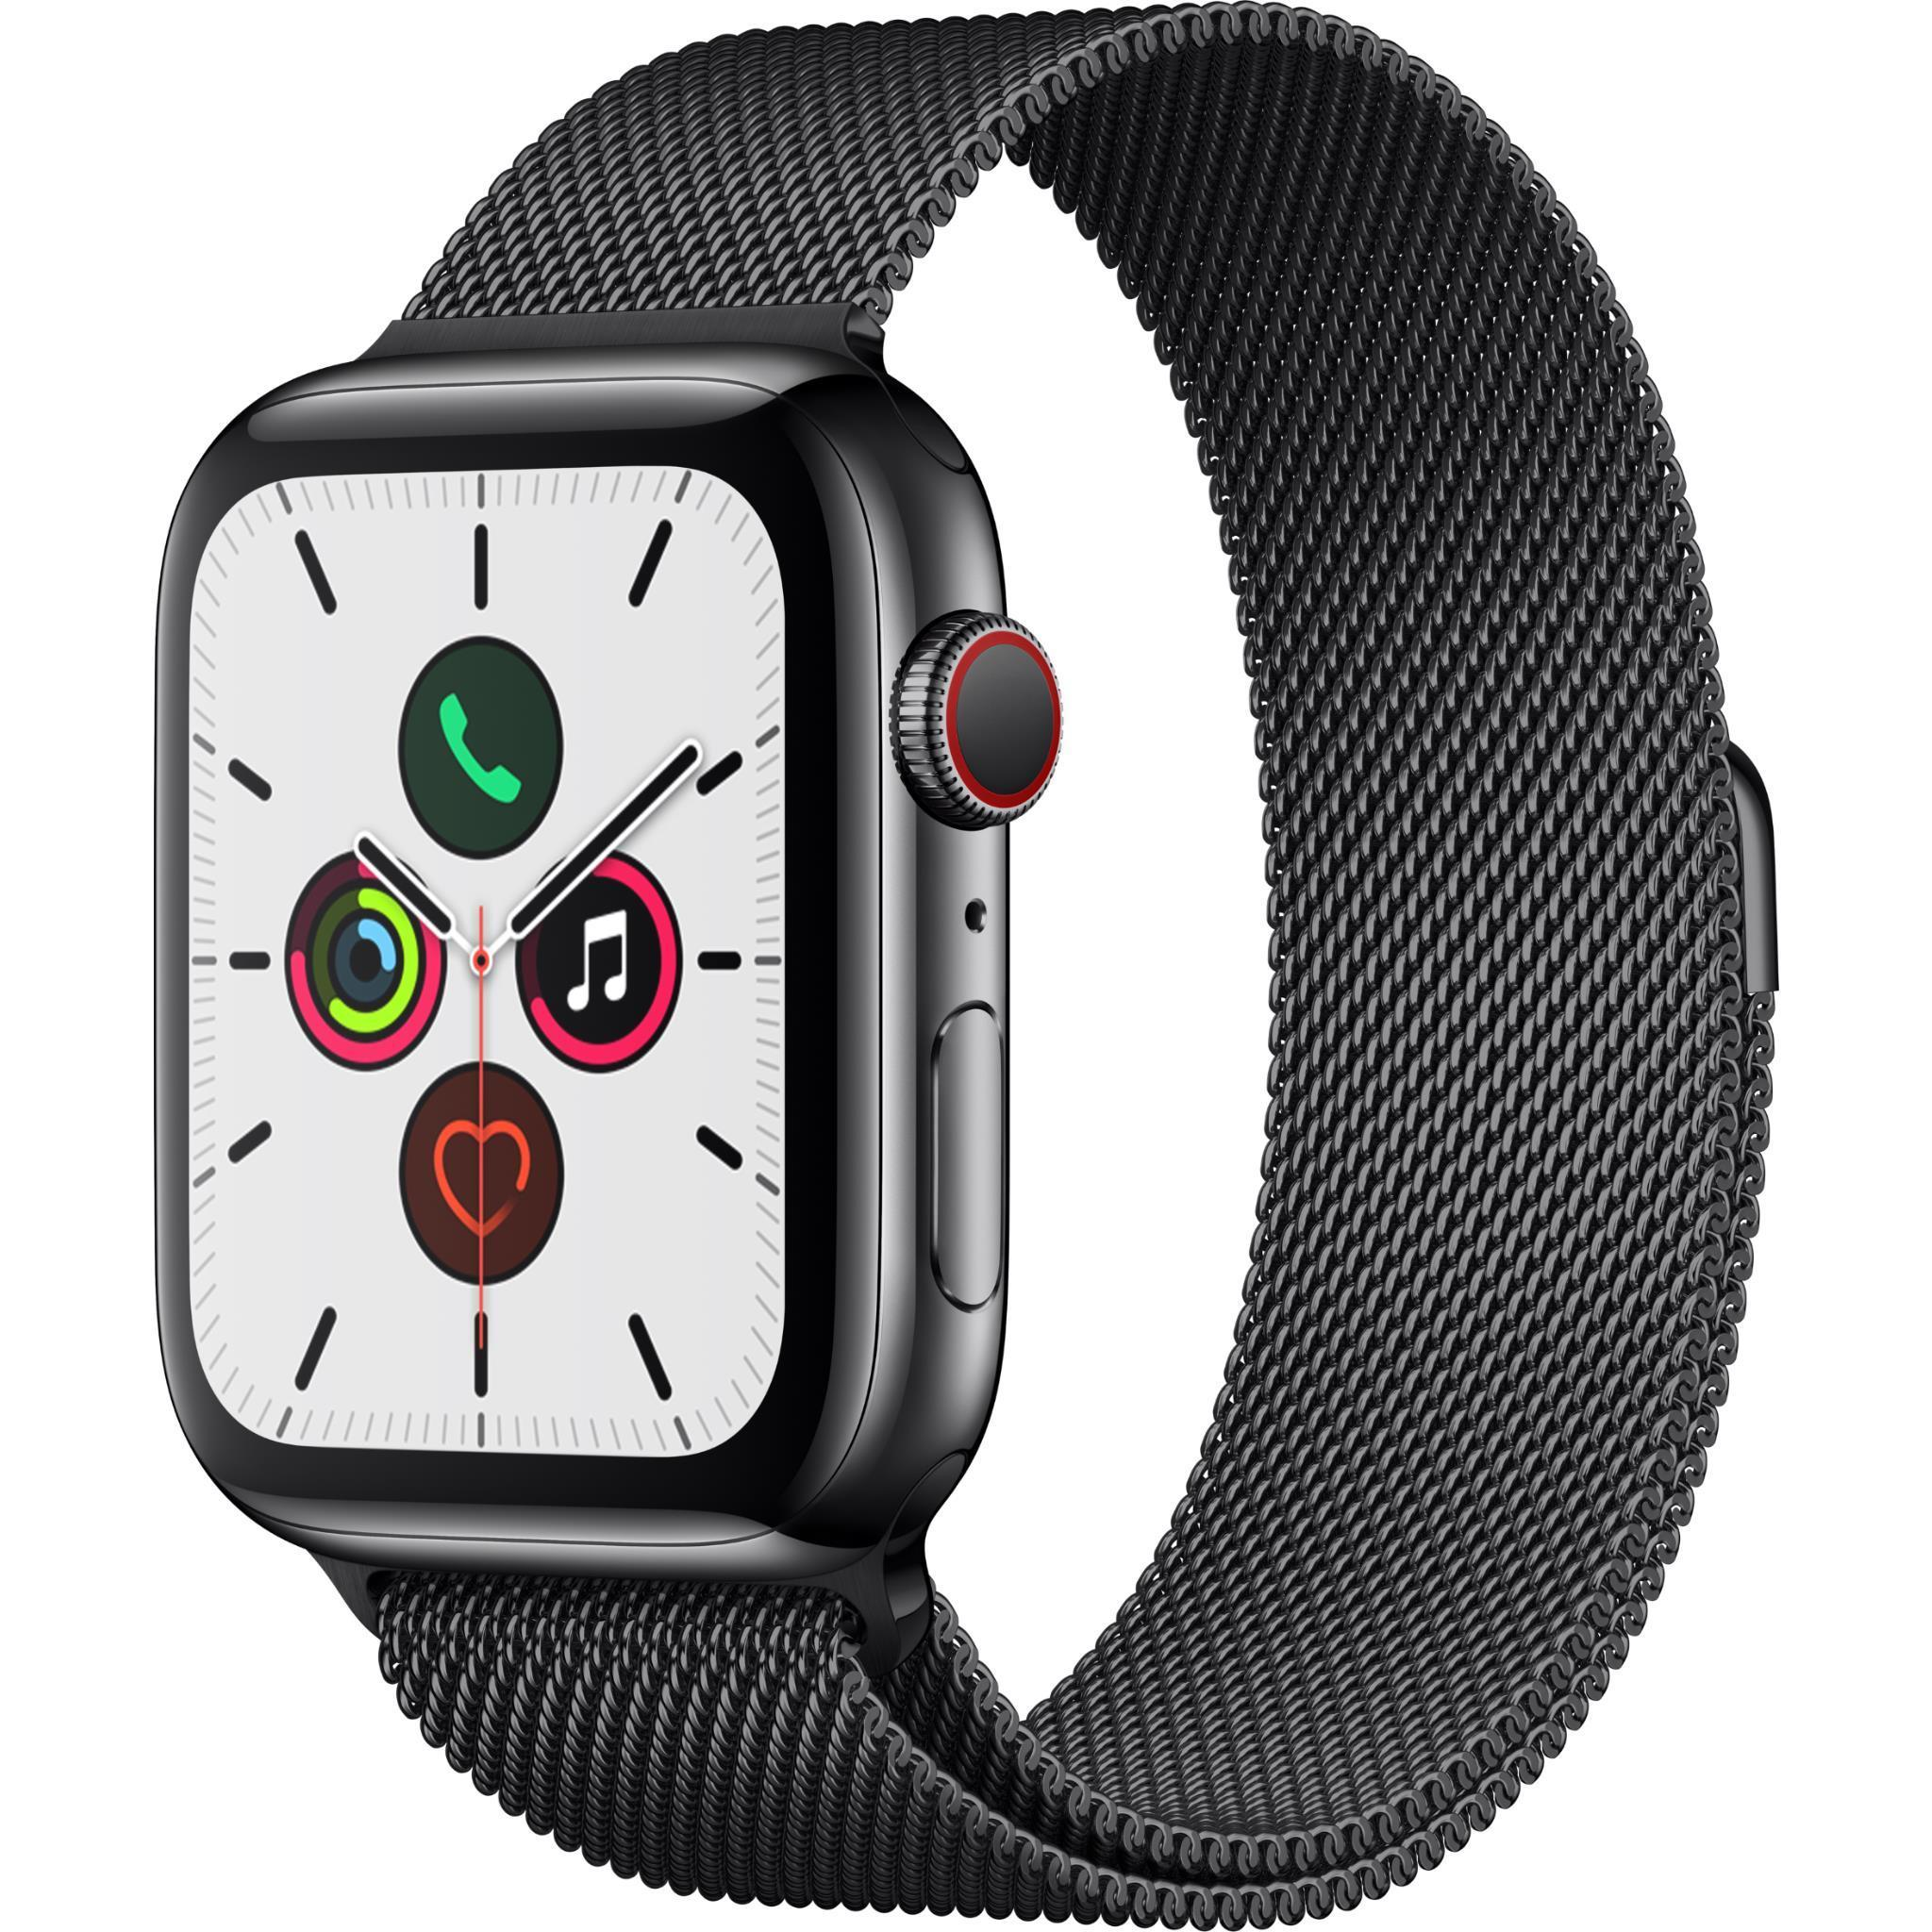 Apple Watch Series 5 44mm Space Black Stainless Steel Case with Milanese Loop GPS + Cellular